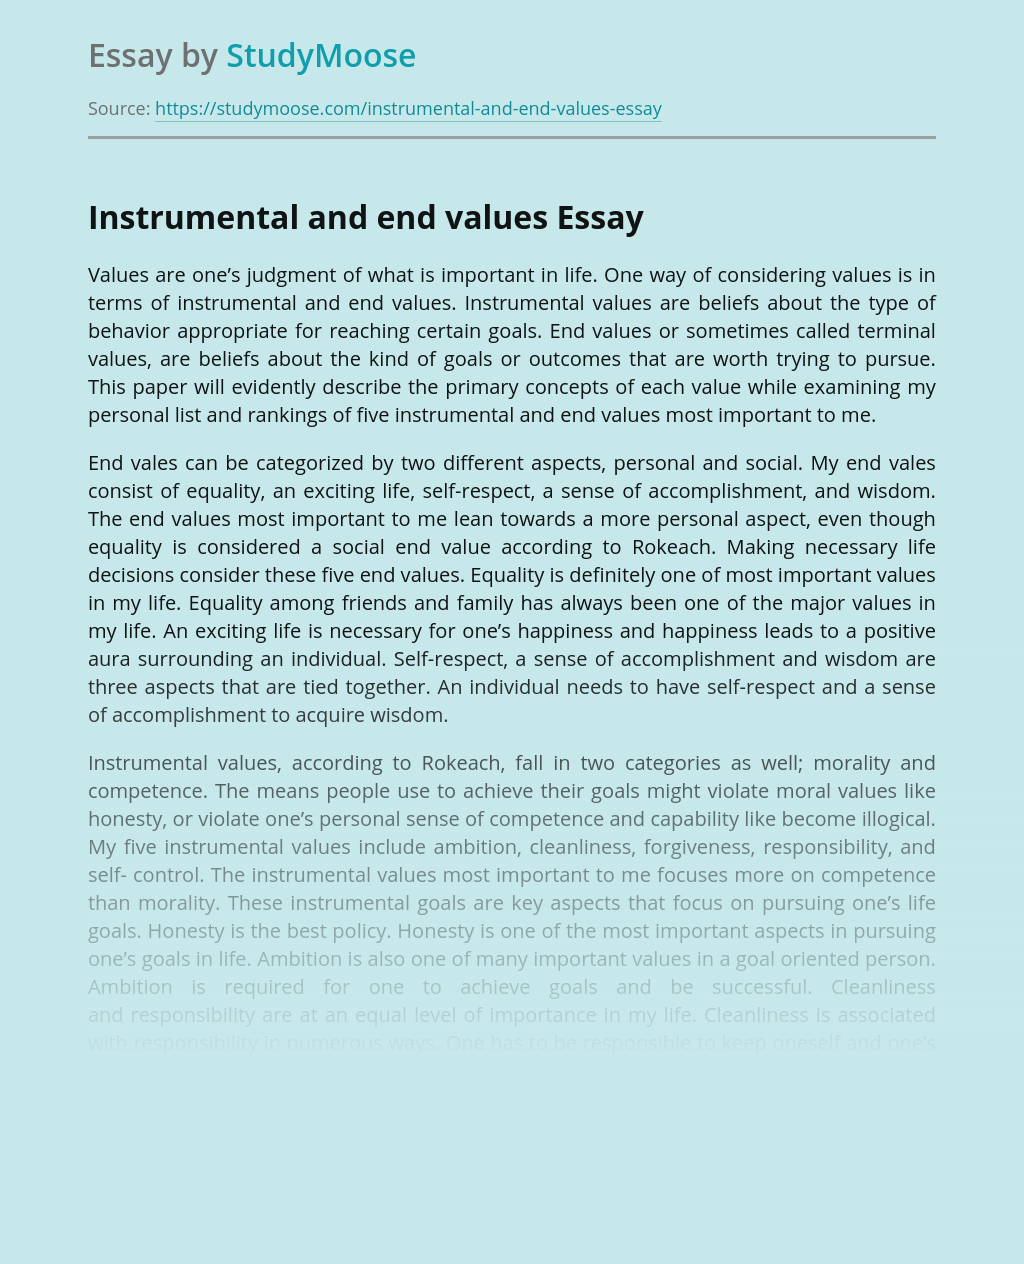 Instrumental and end values